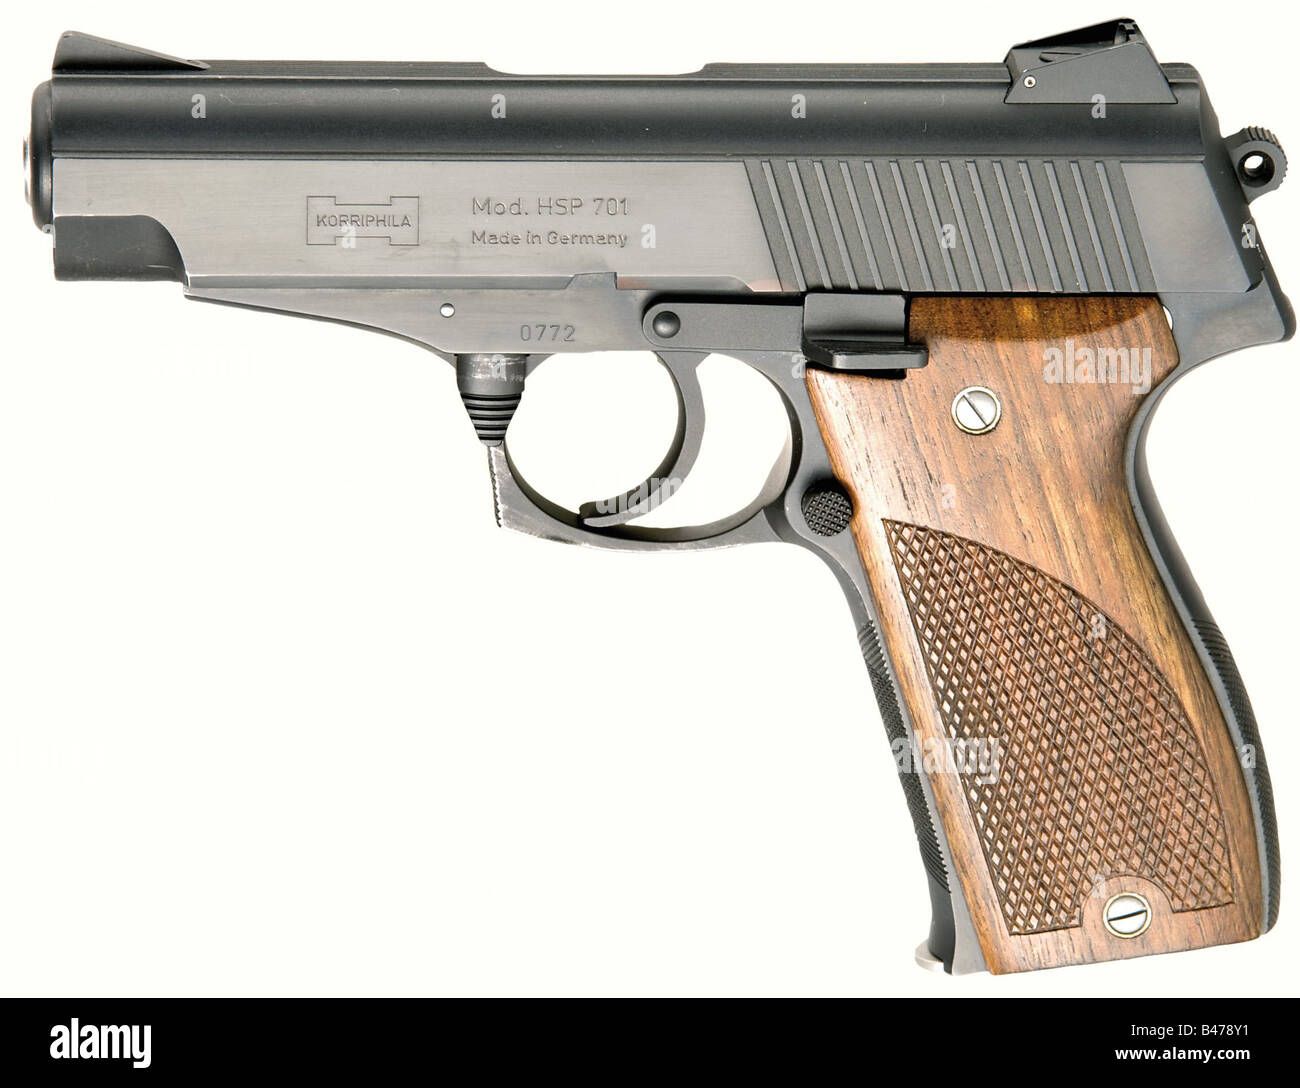 A Korriphila model HSP 701, calibre 9 mm Parabellum, no. 0772. Matching numbers. Bright bore. Proof marked 1986. - Stock Image